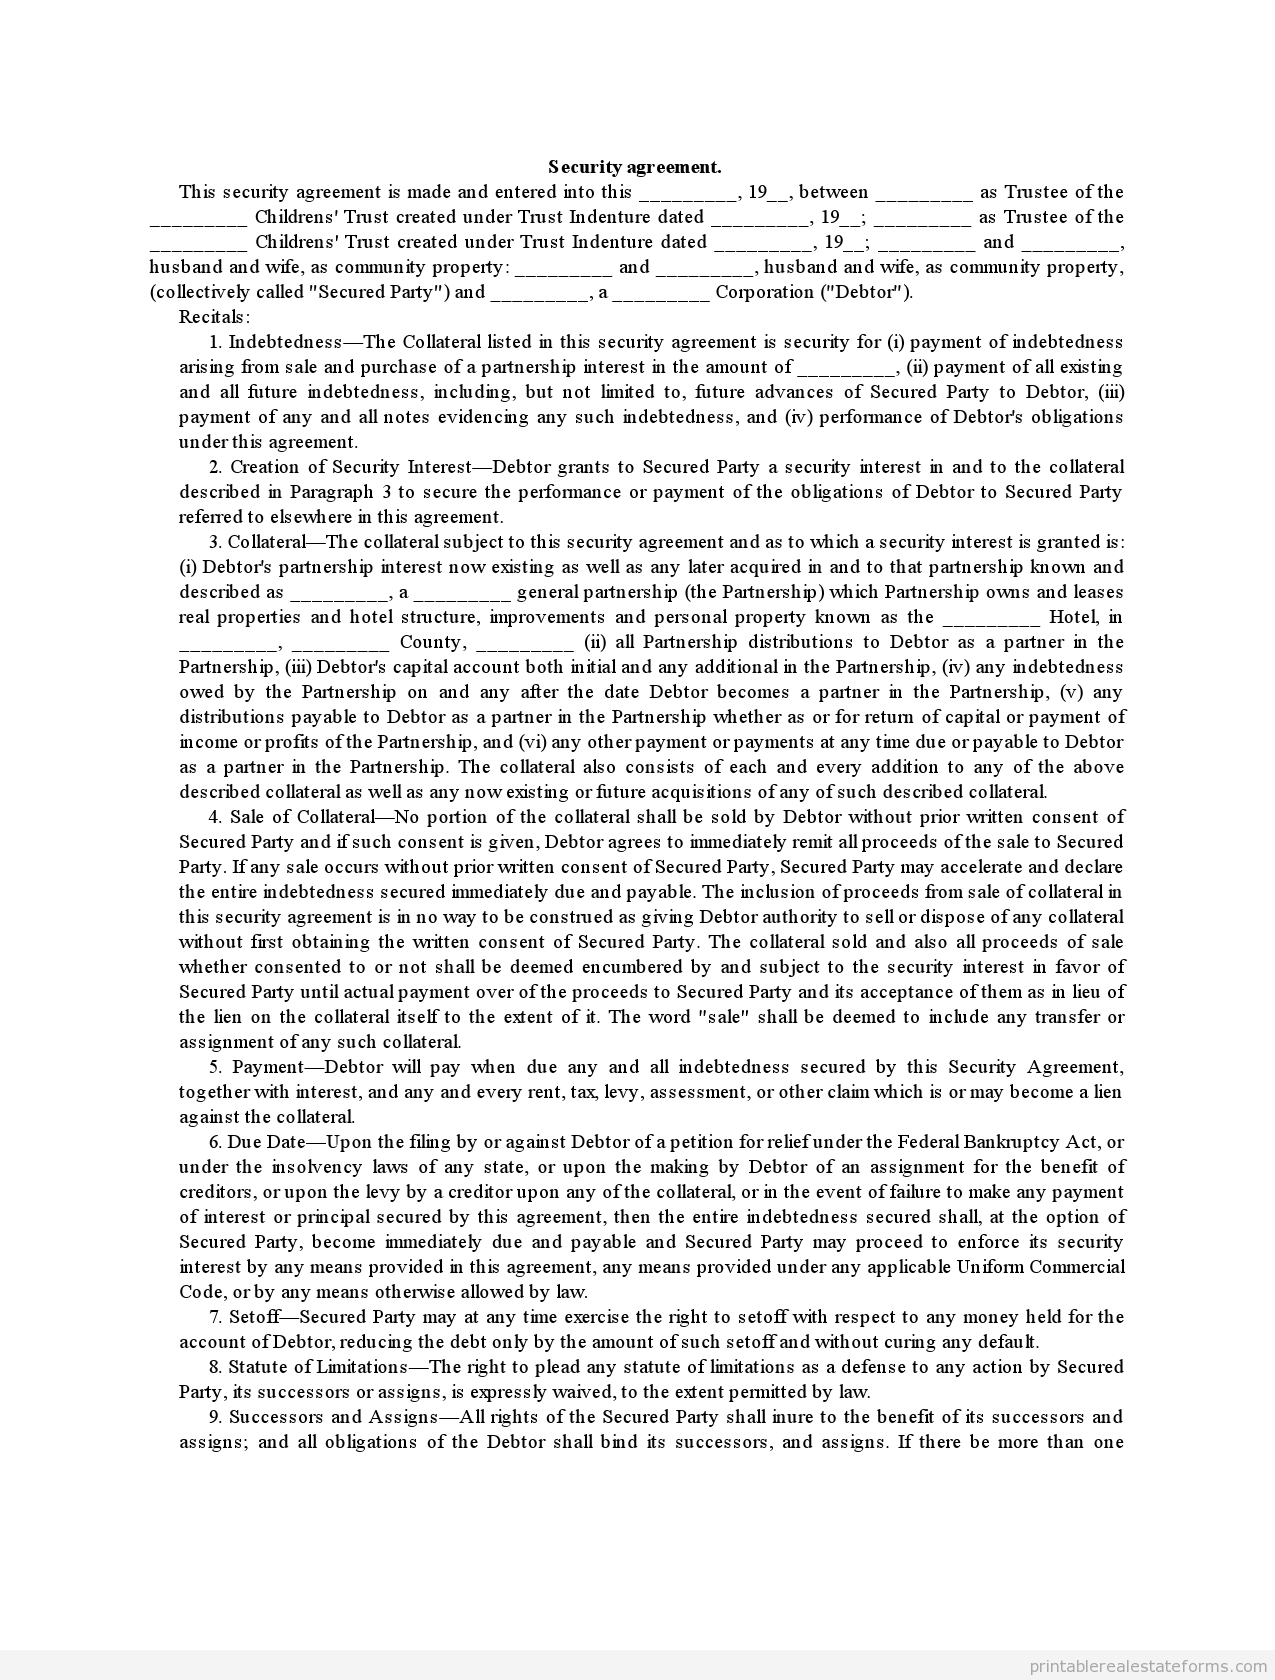 Printable Sample security agreement Form – Sample Security Agreement